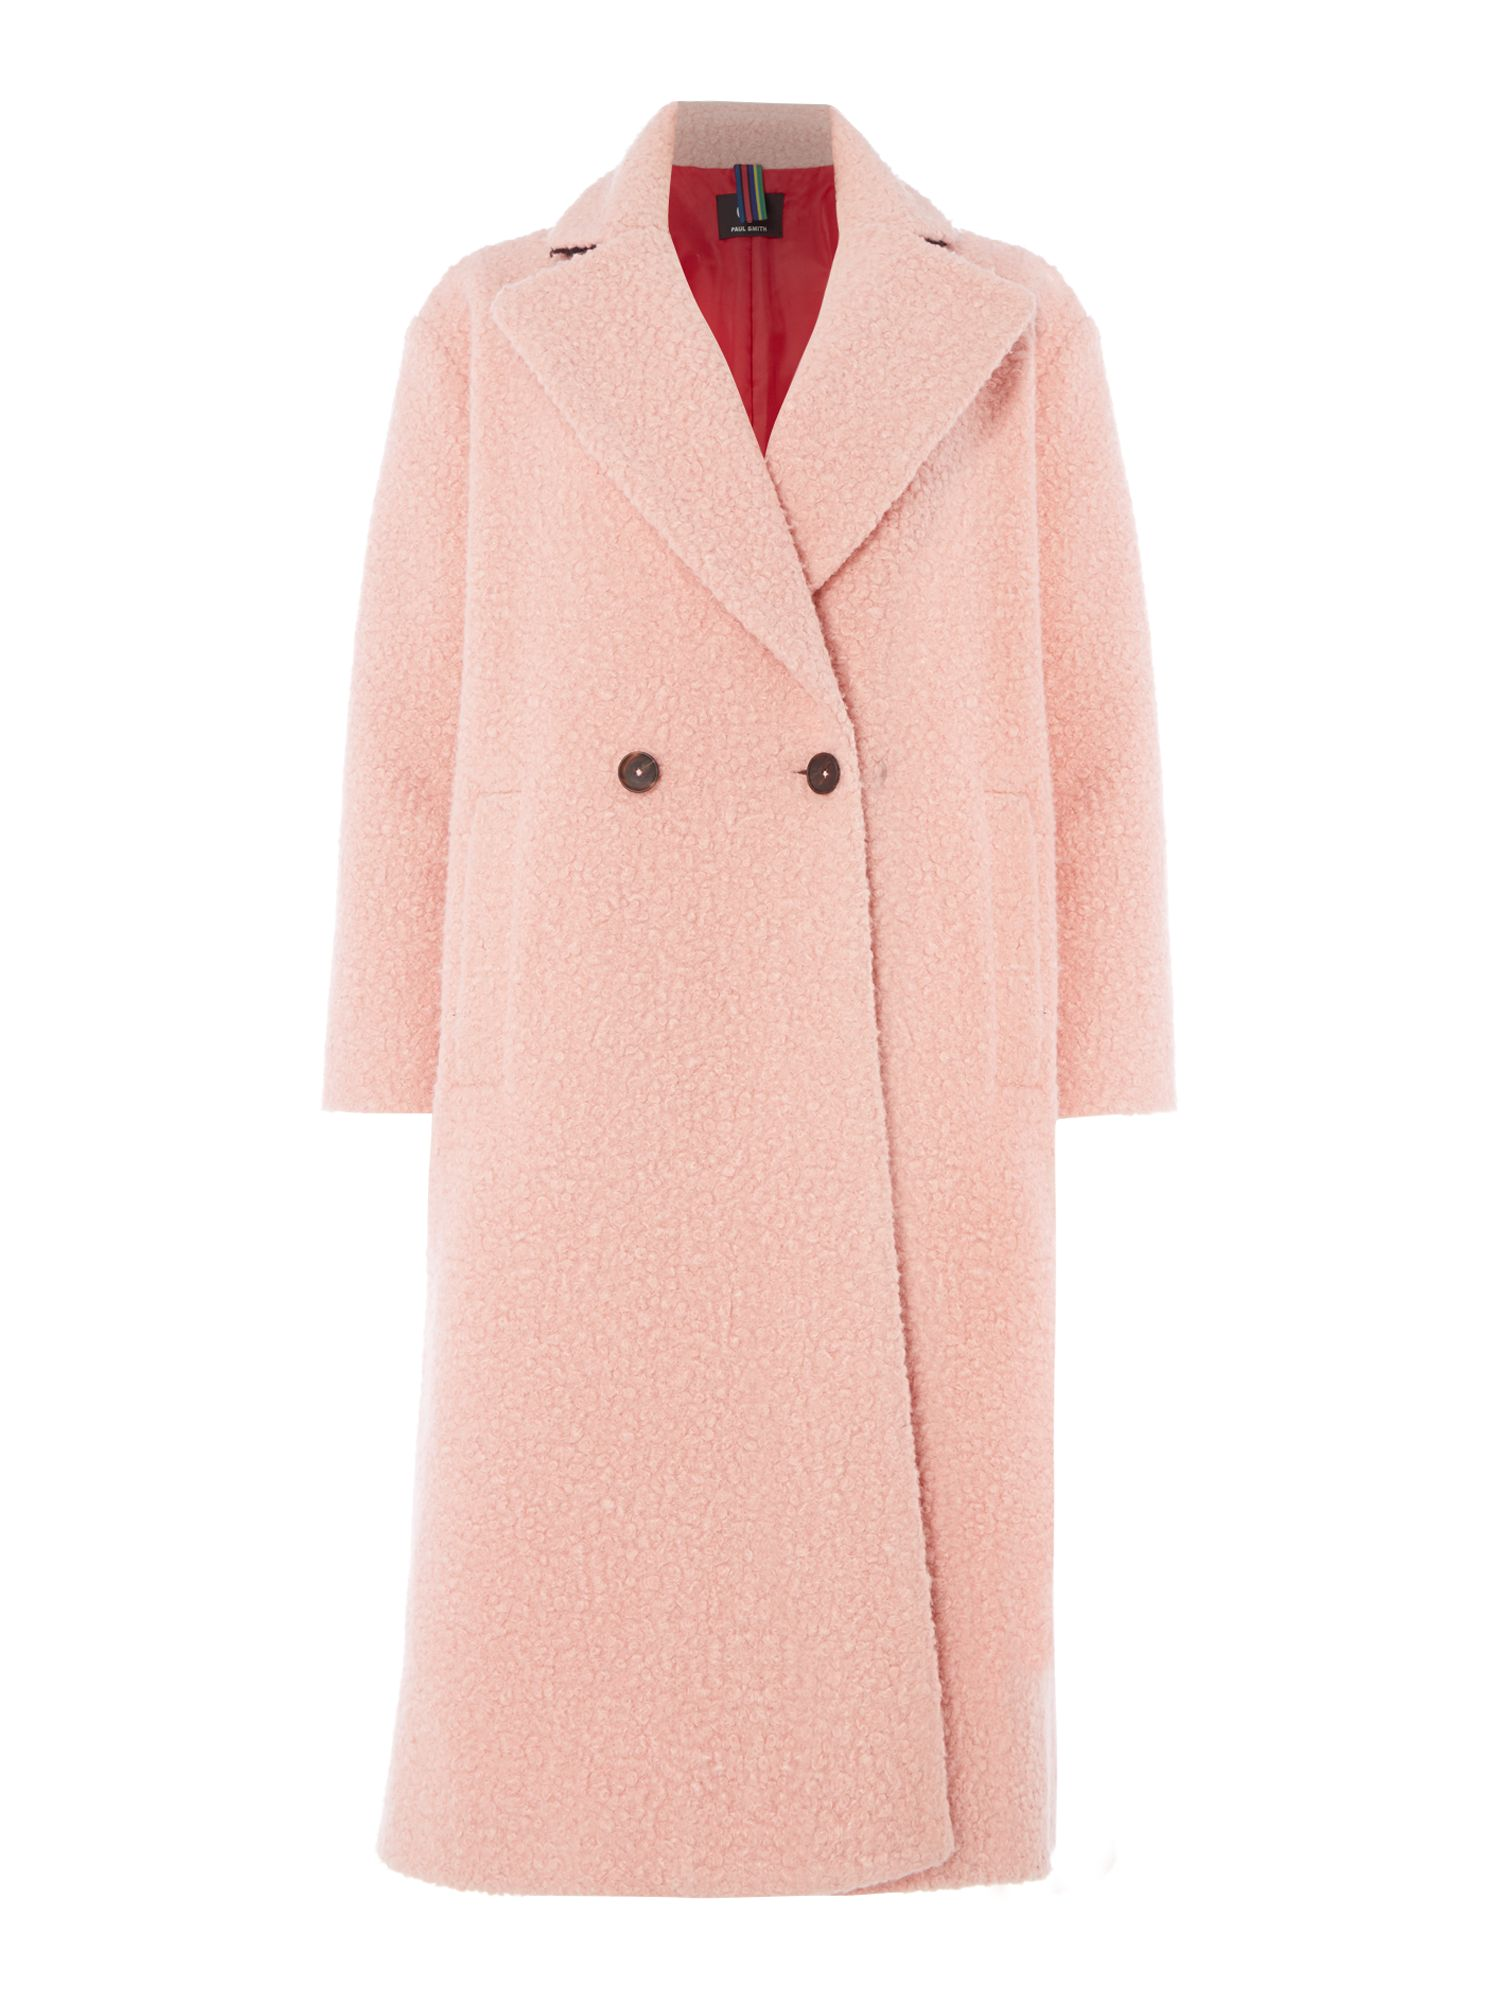 PS By Paul Smith Teddy bear coat, Light Pink